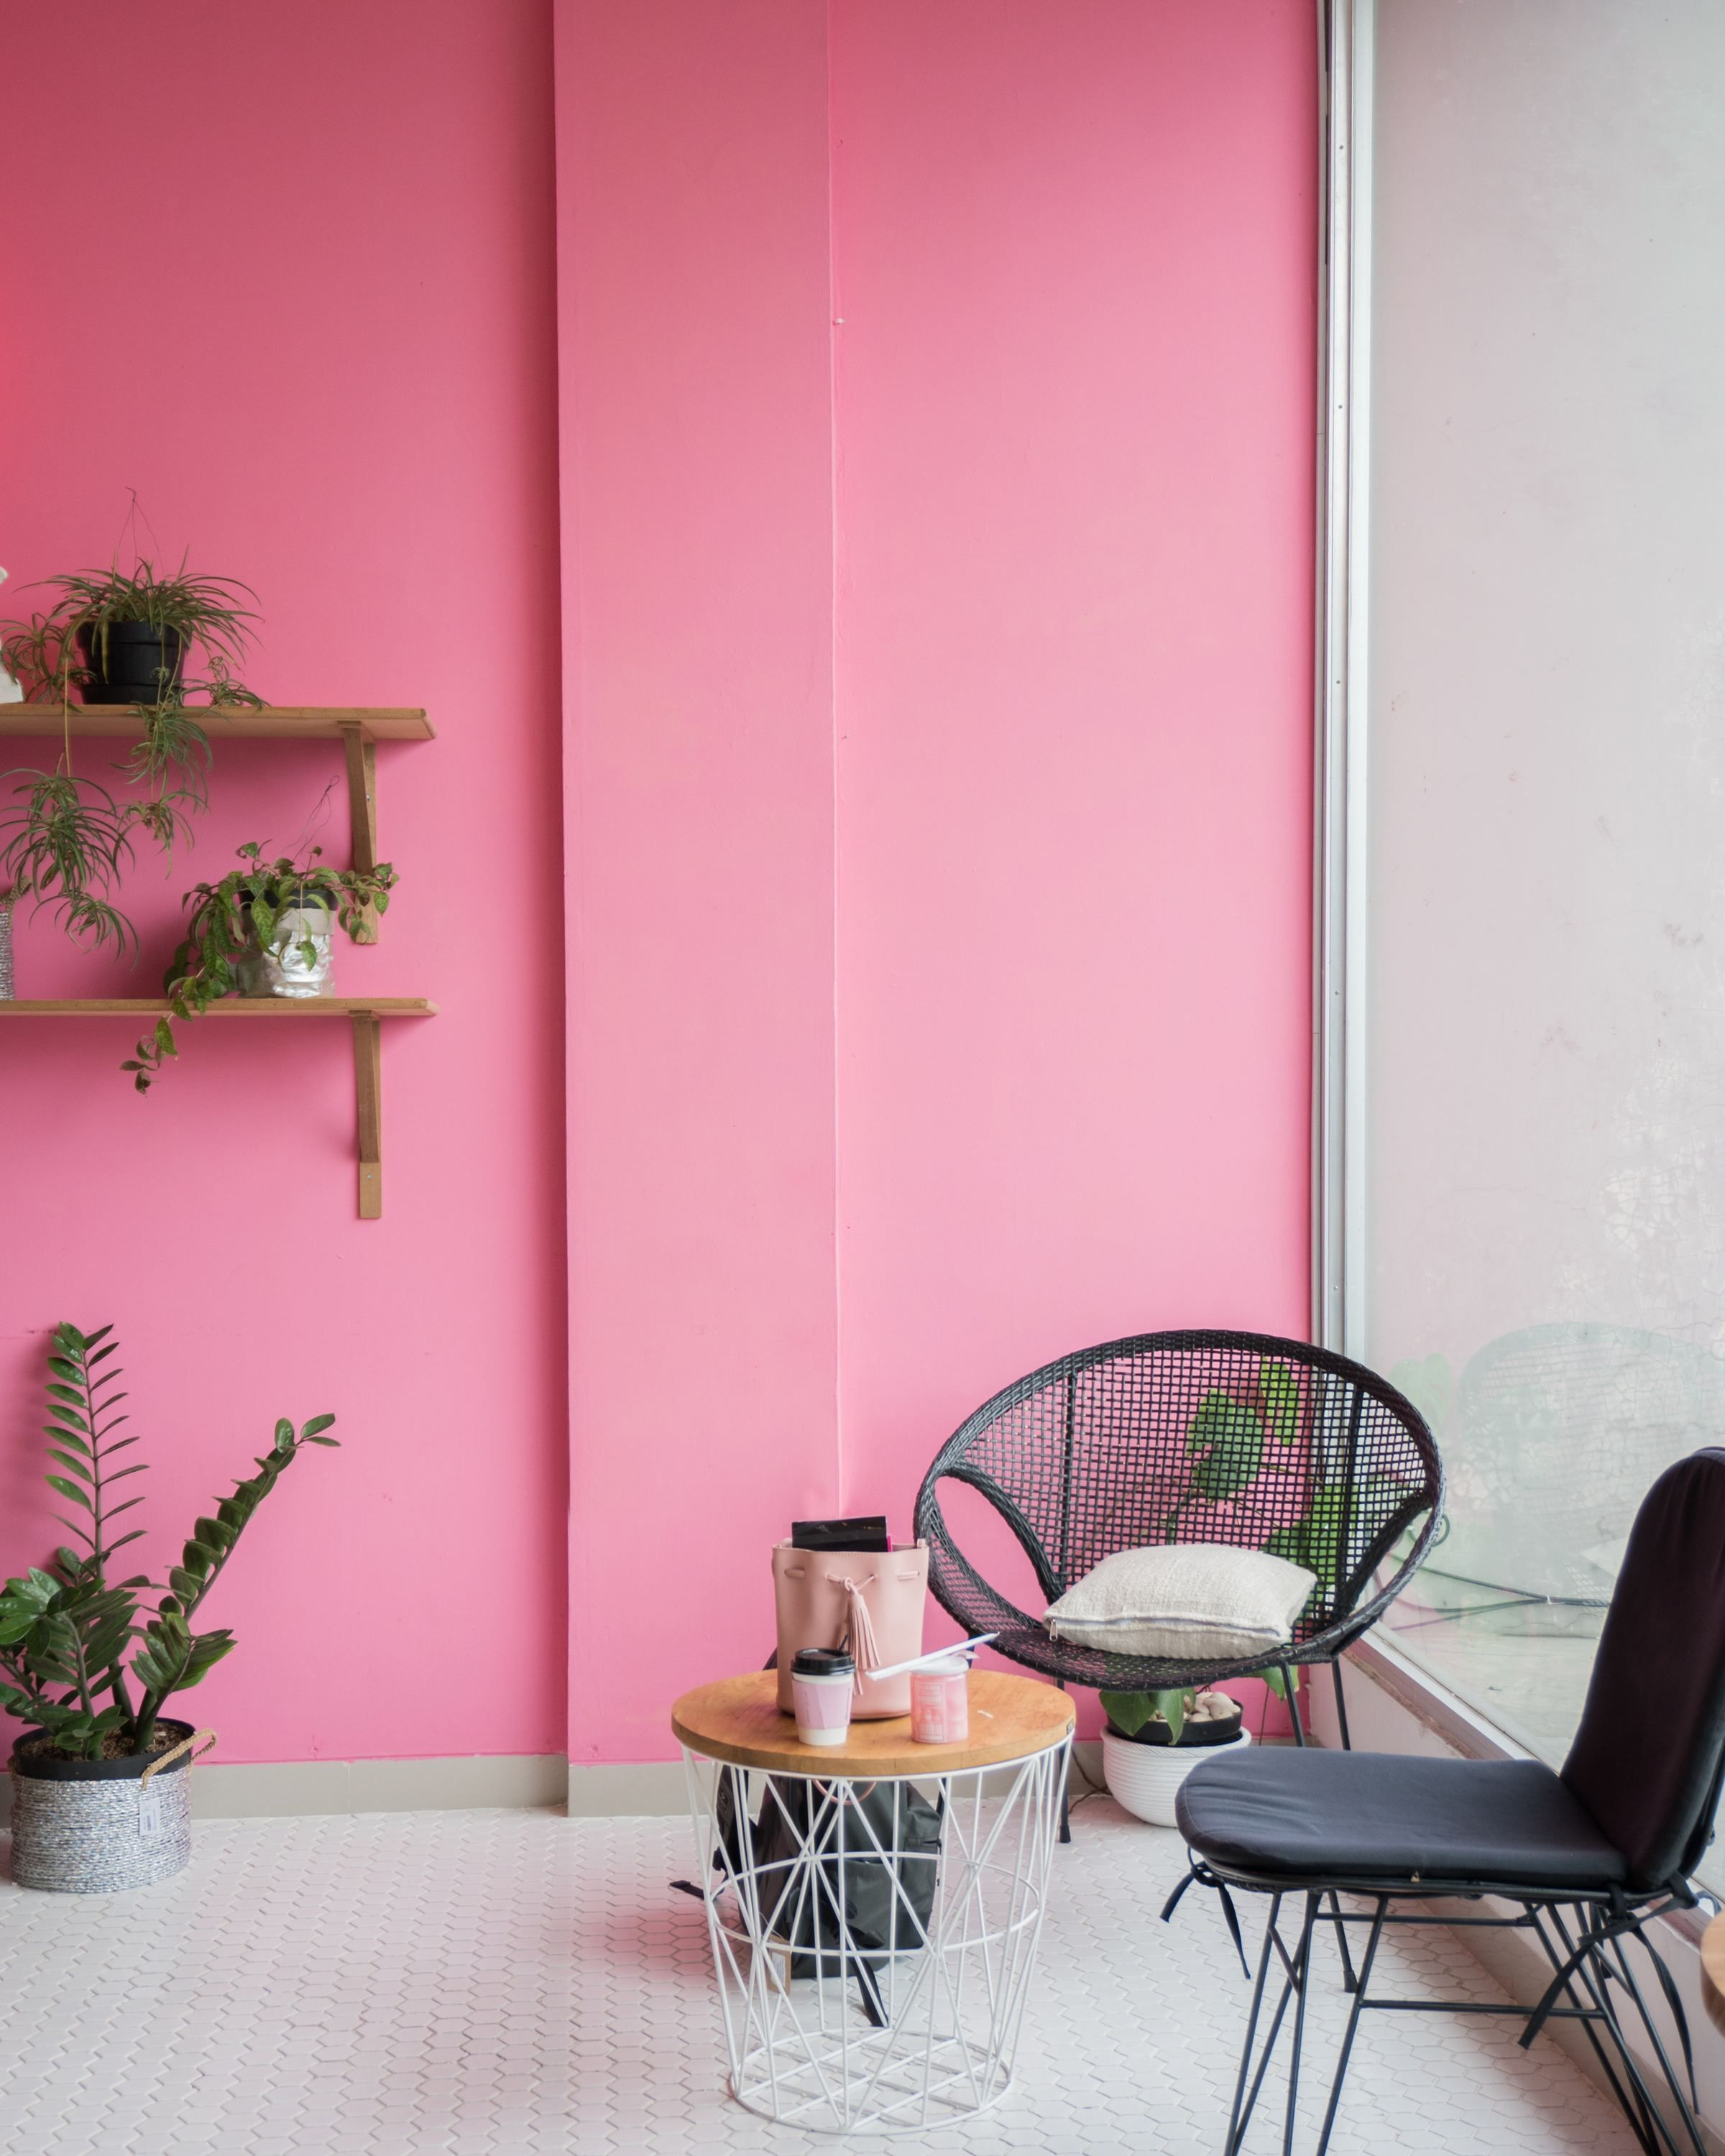 Interior Accent Wall Colors: Top Accent Wall Colors To Consider For Your Interior